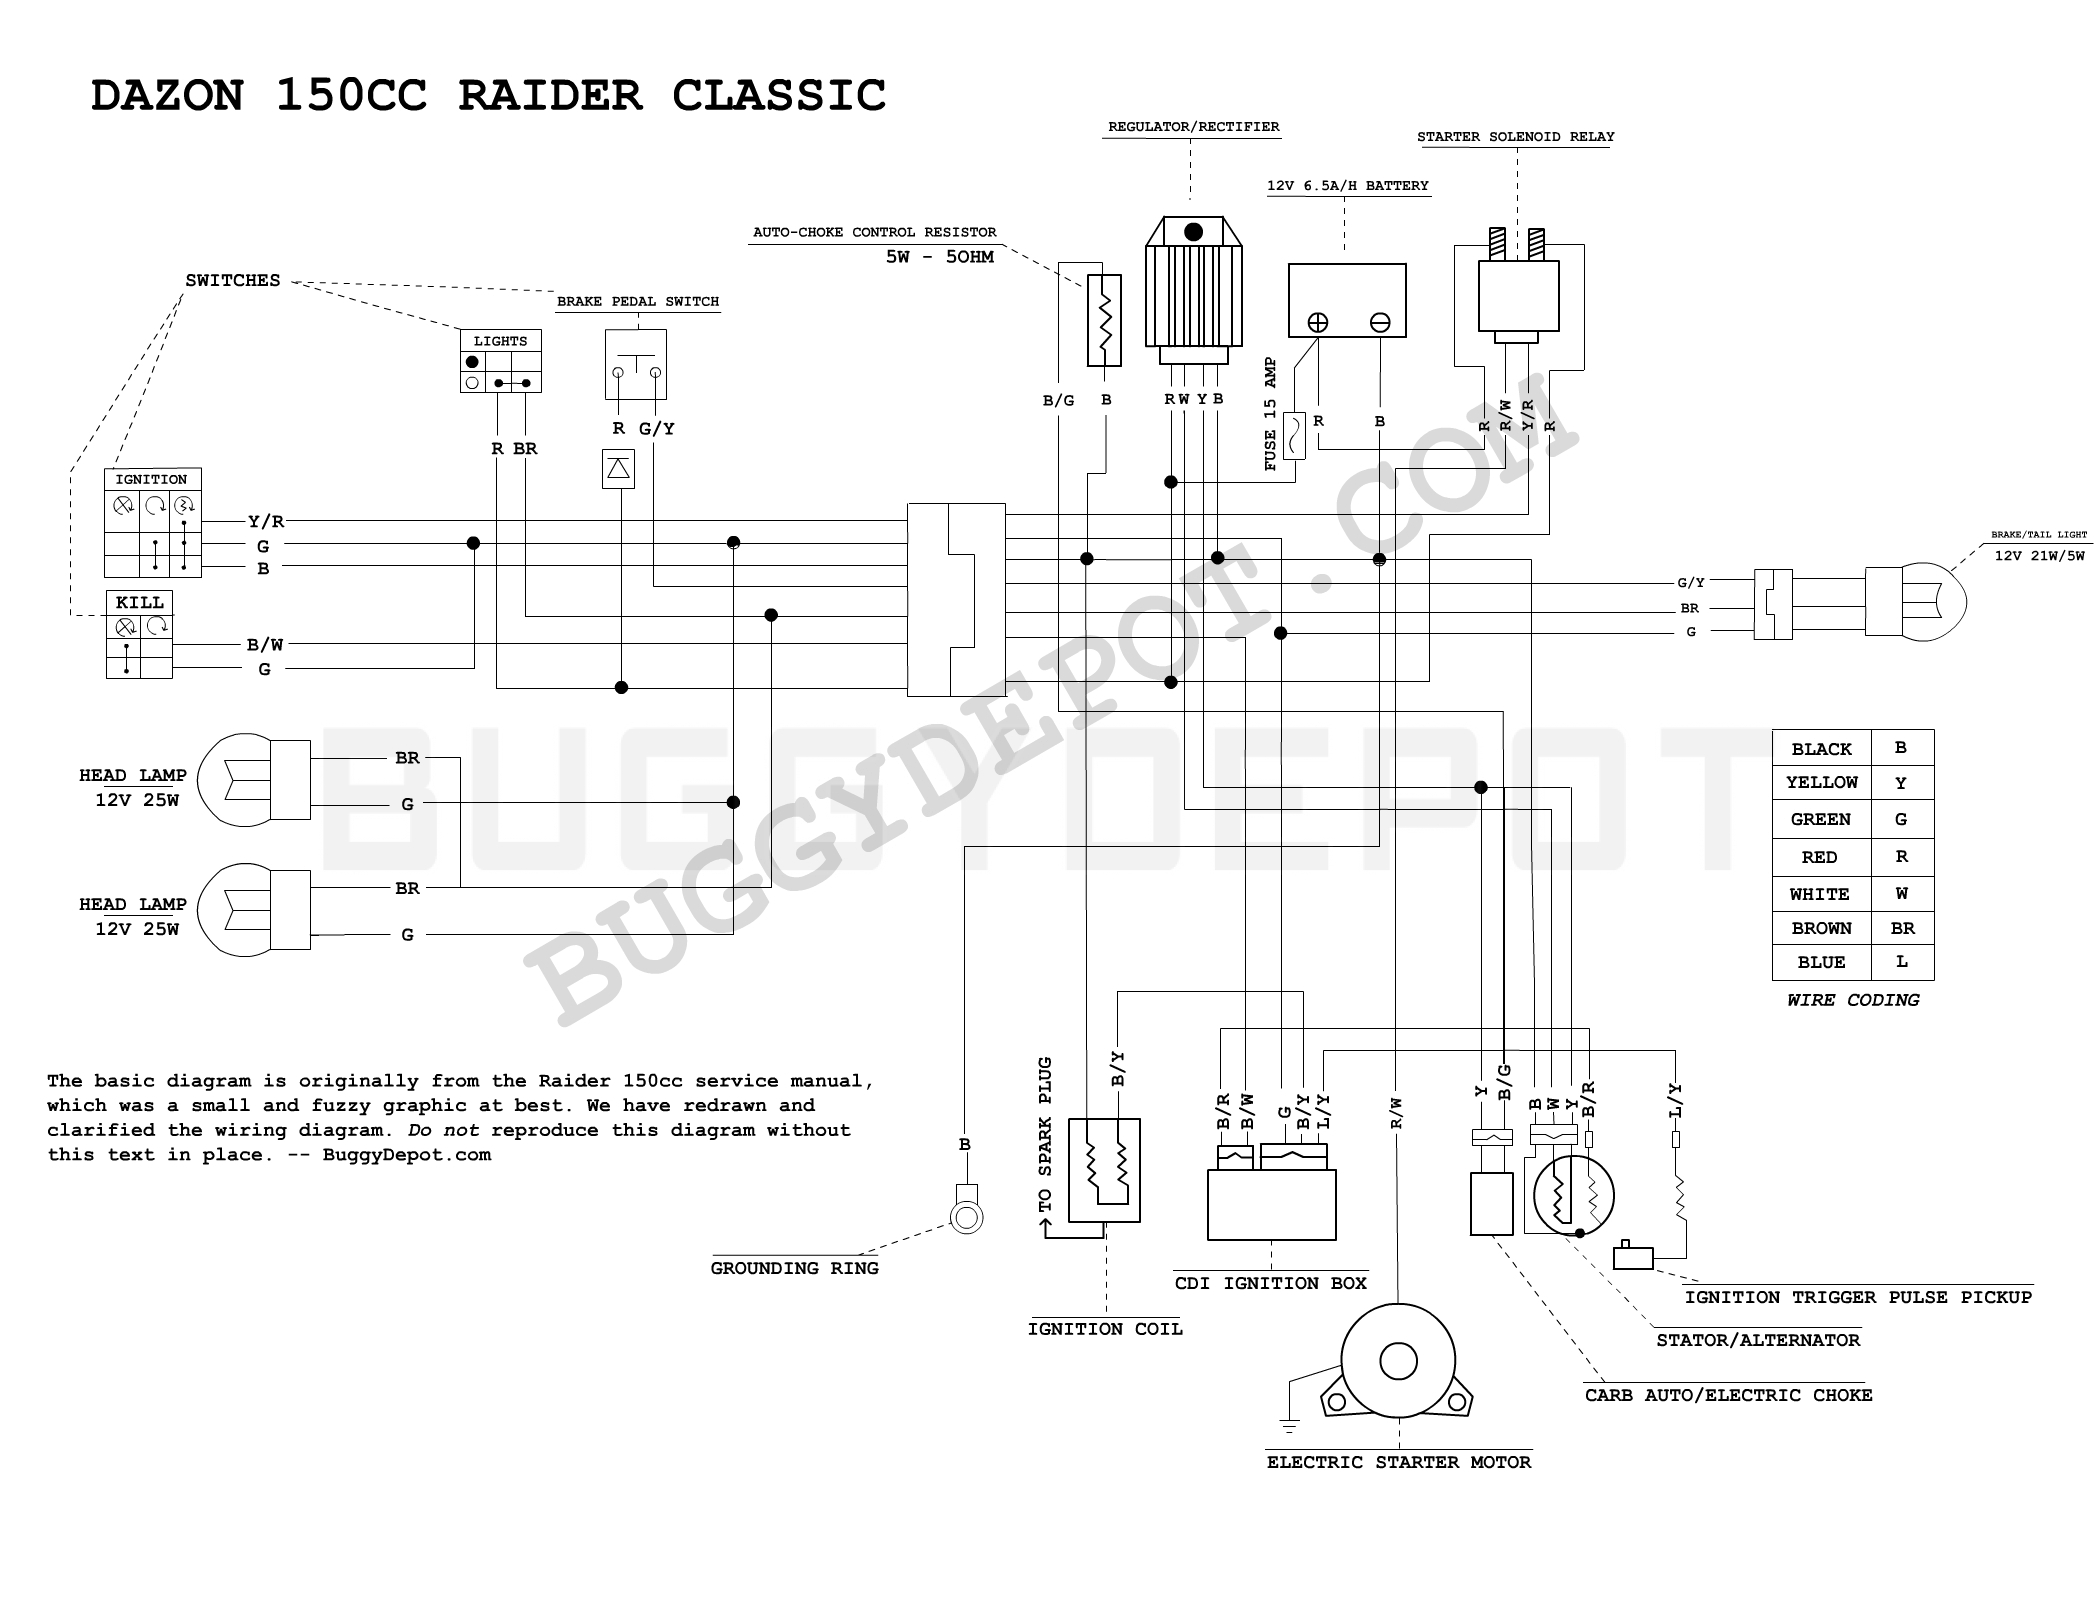 article_33_1278205207 dazon raider classic wiring diagram buggy depot technical center baja 150 atv wiring diagram at eliteediting.co